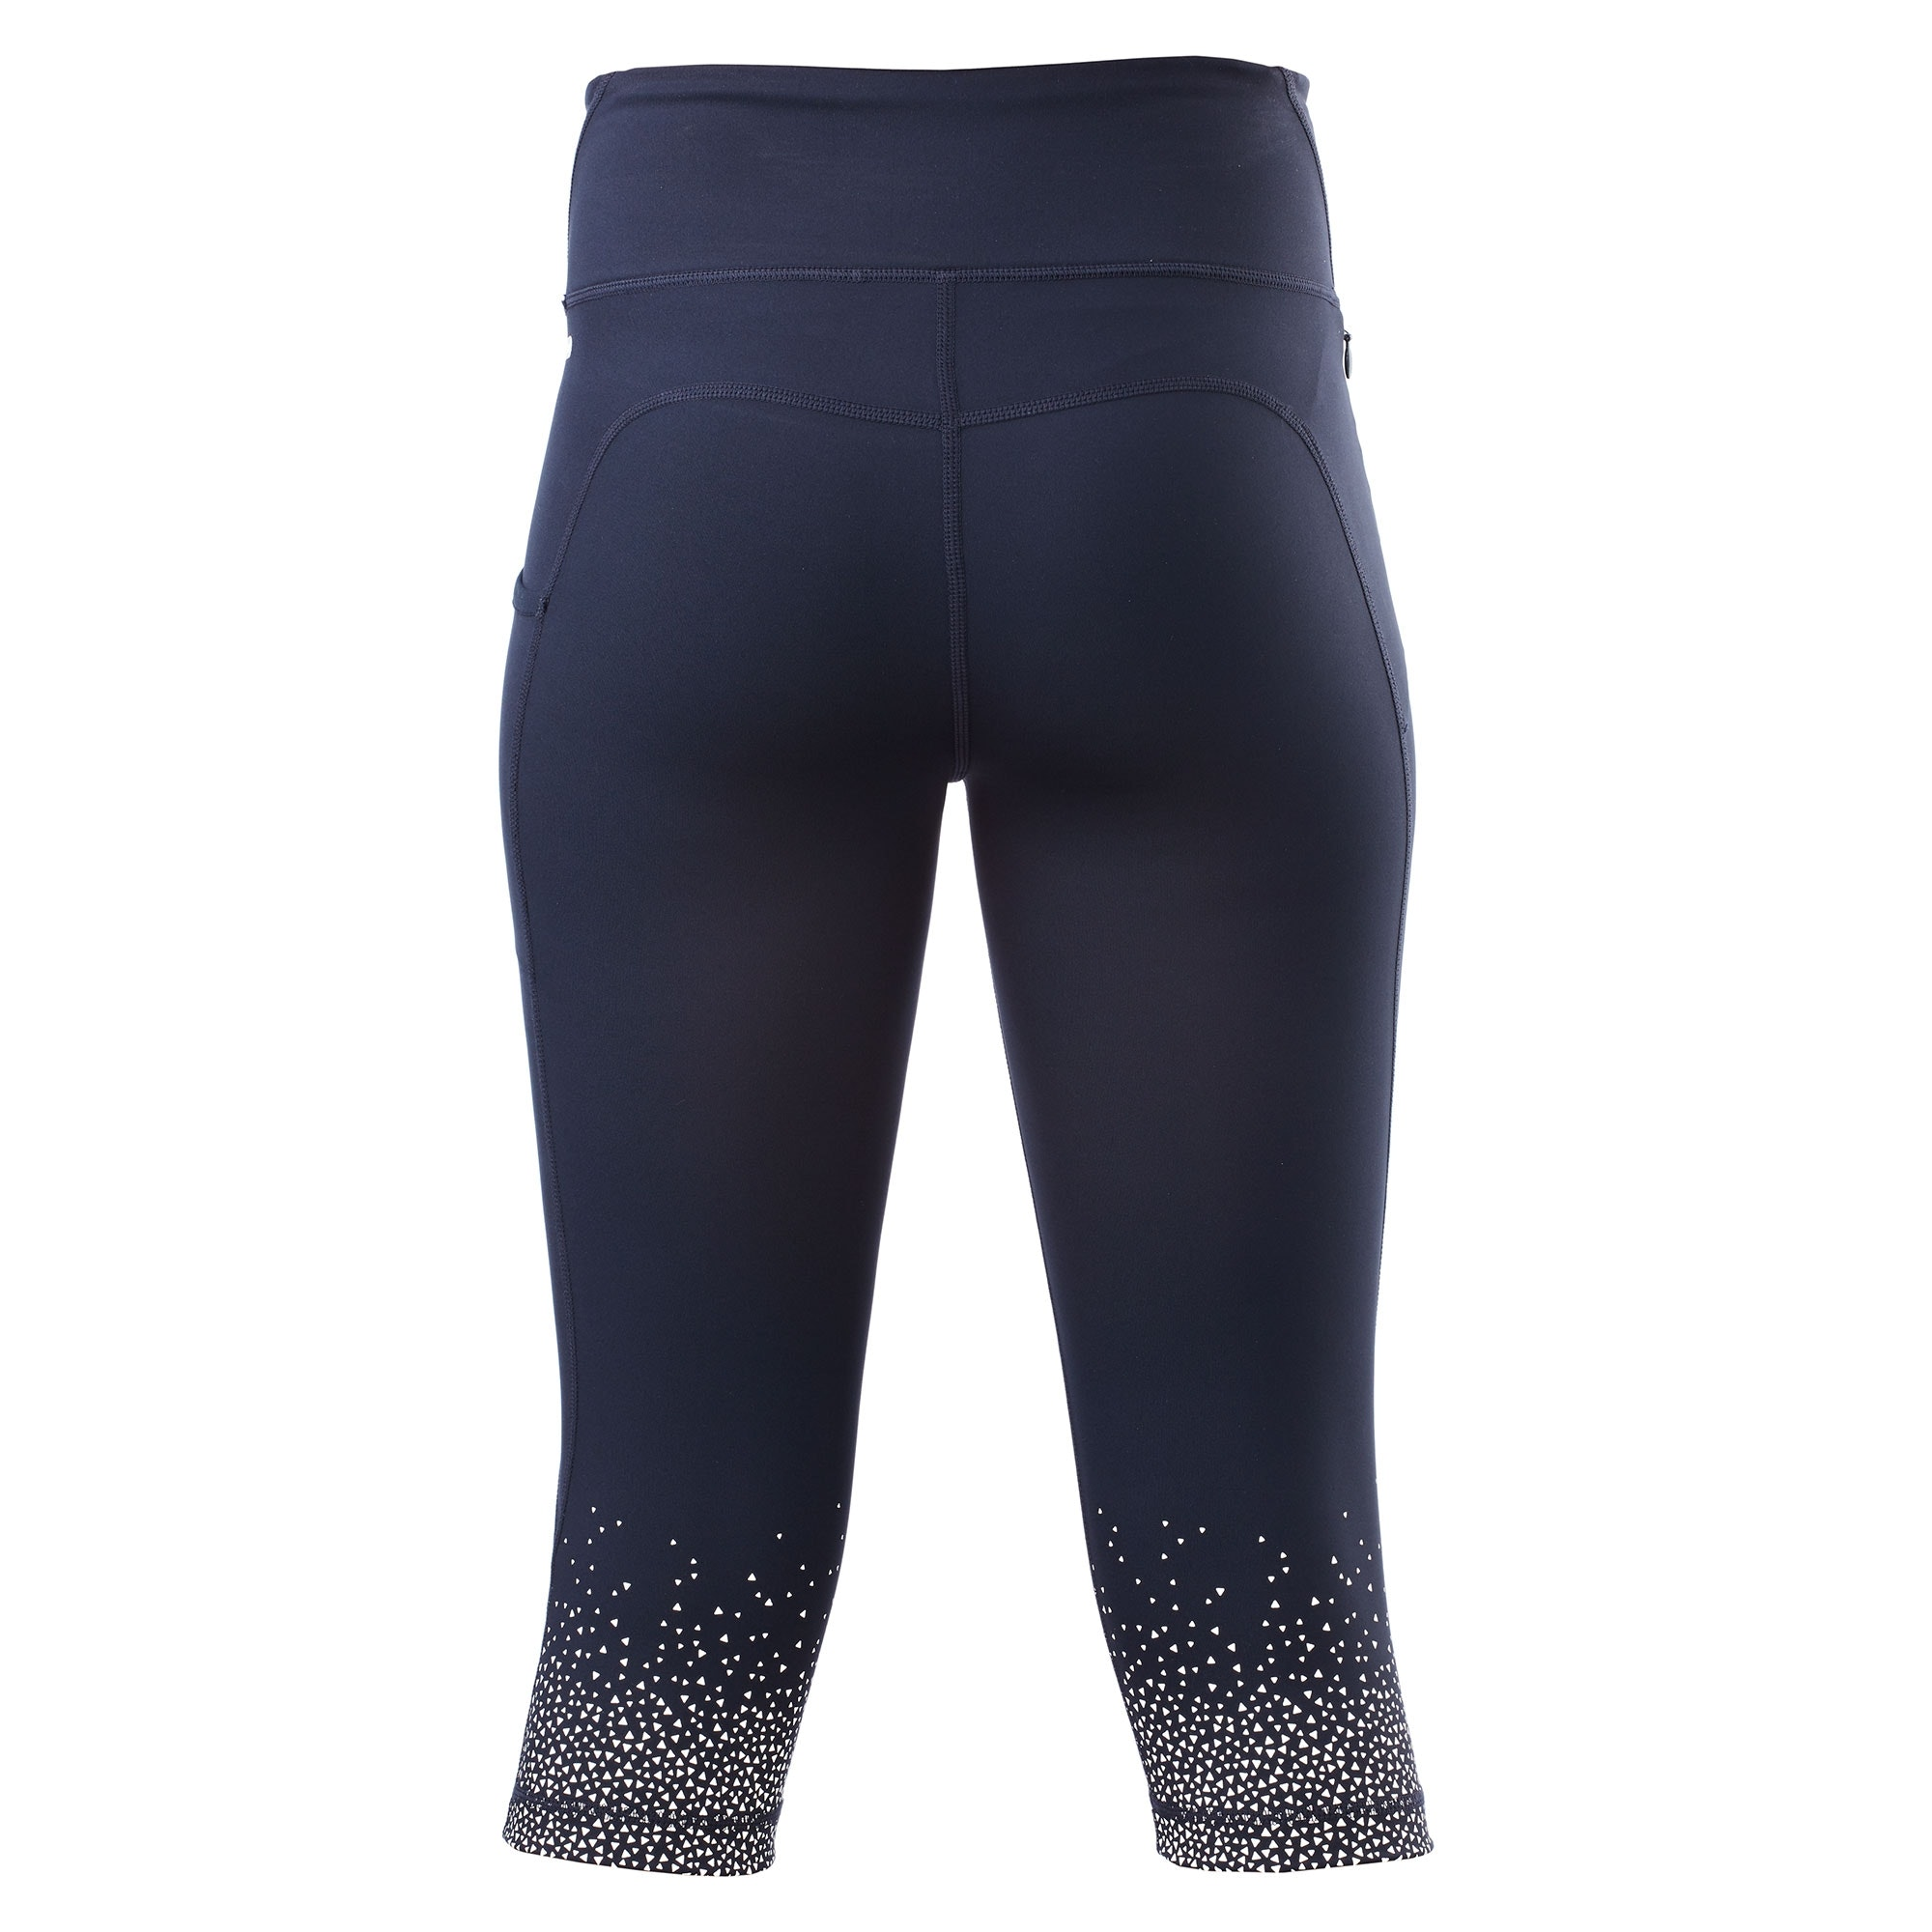 NEW-Kathmandu-Zeolite-Women-039-s-Active-Performance-3-4-Leggings thumbnail 18